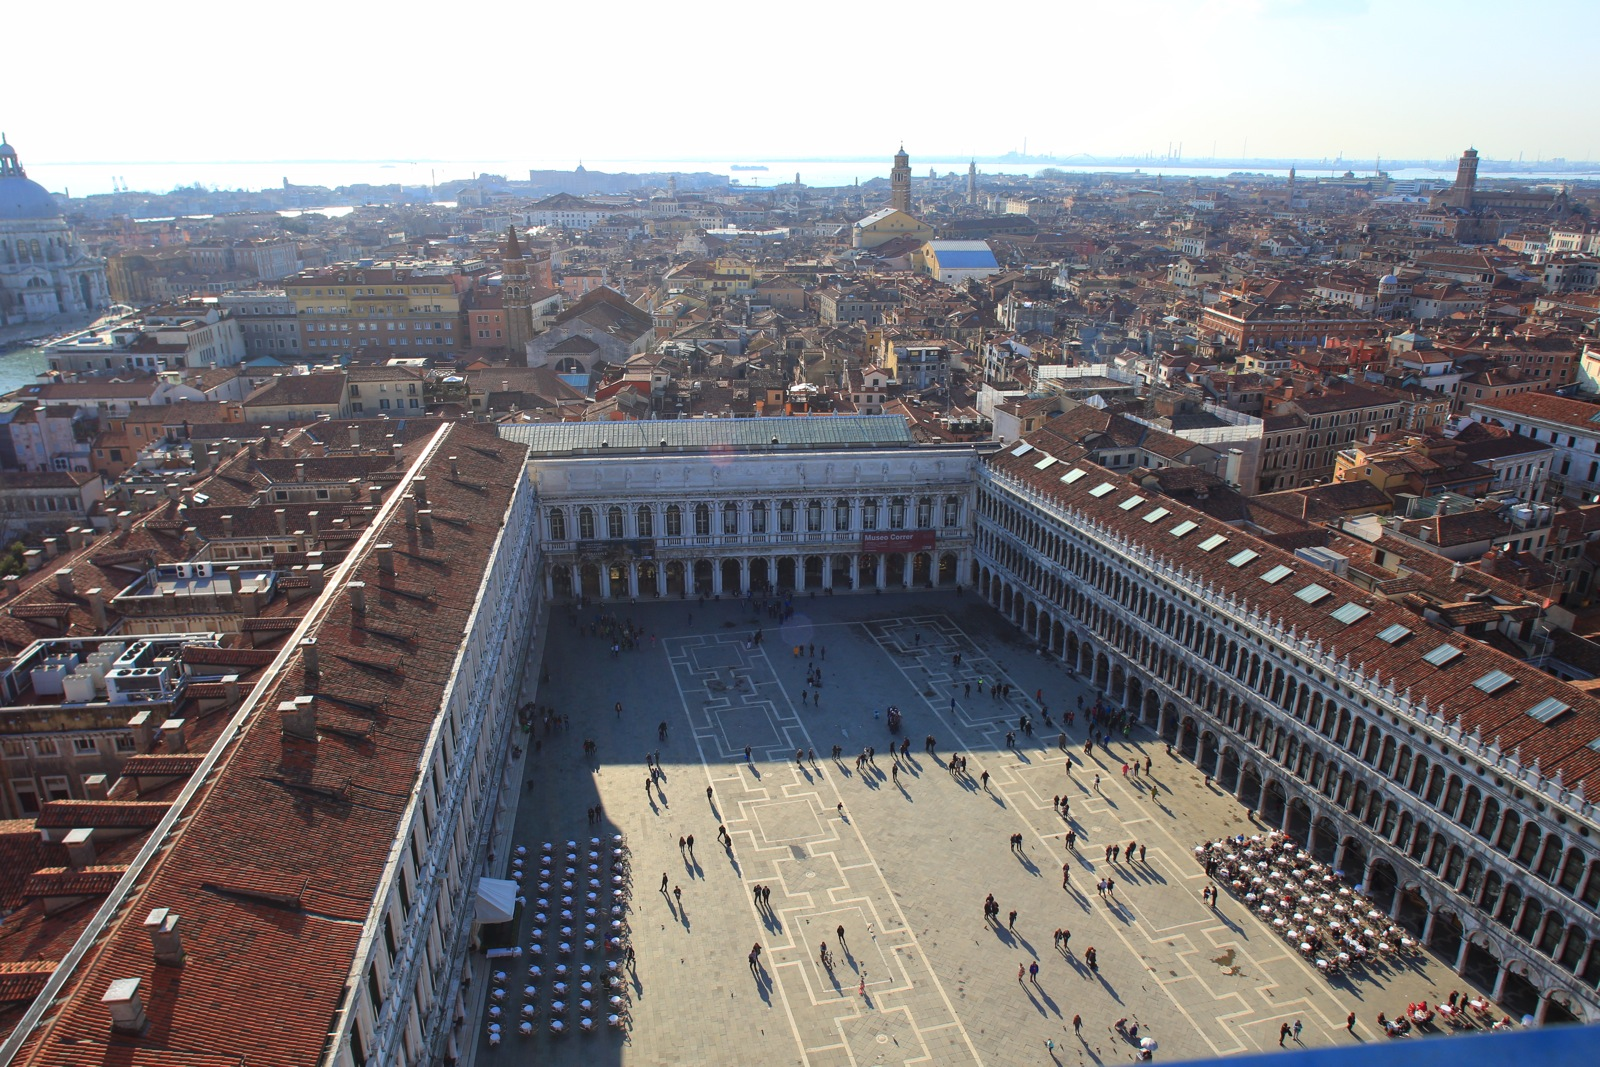 Piazza San Marco Photo by Darrell Morrison